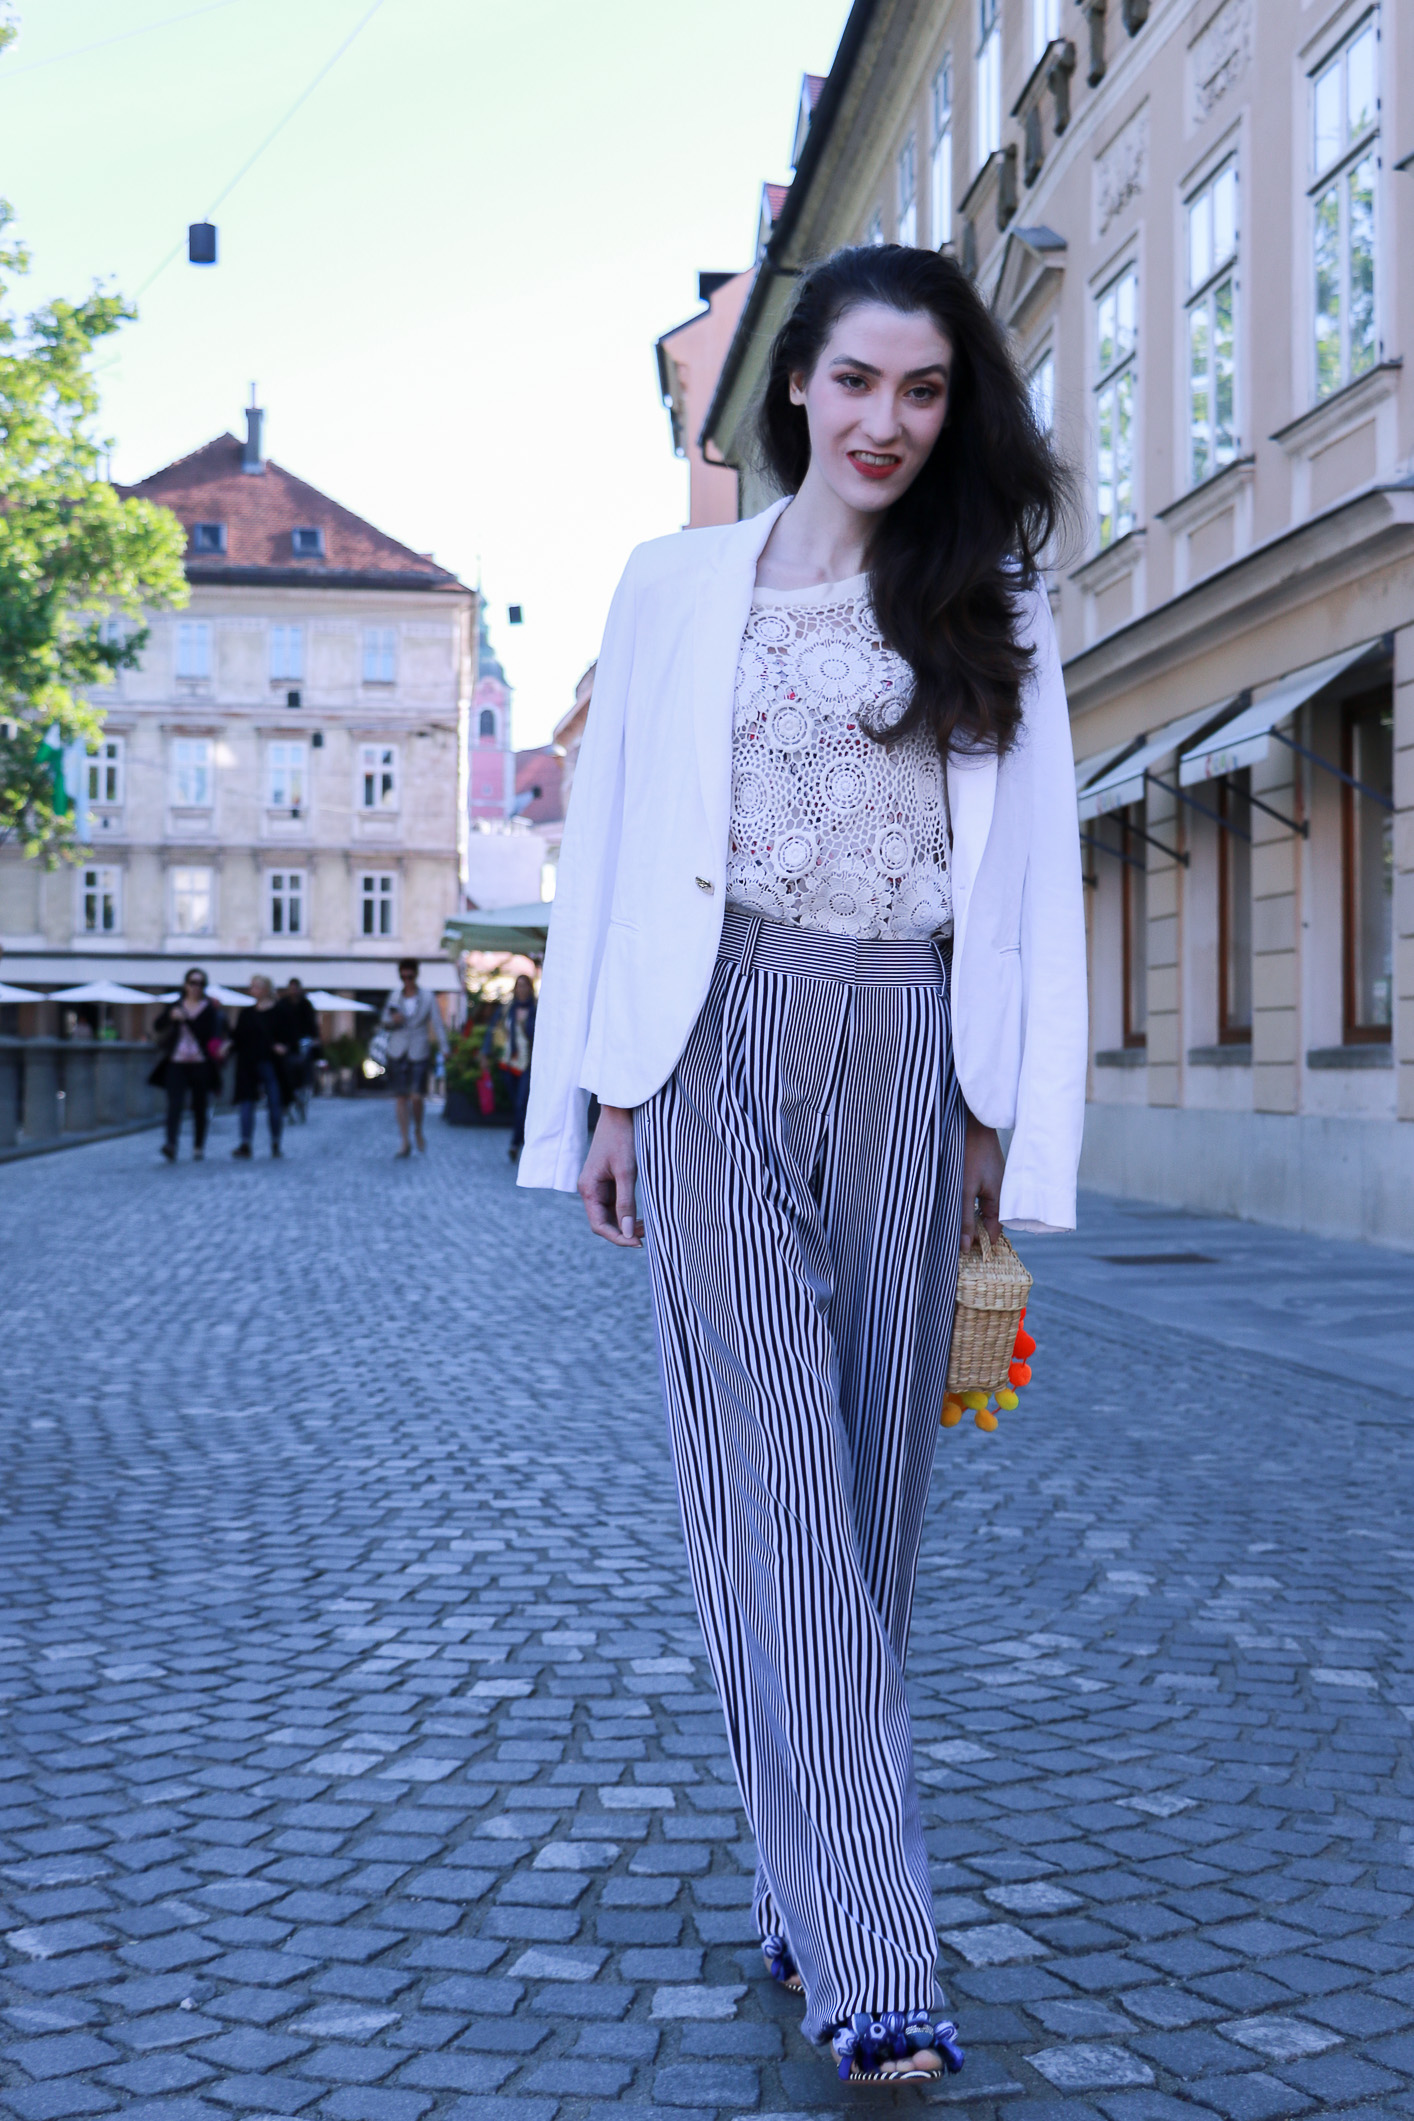 Fashion blogger Veronika Lipar of Brunette From Wall Street on her morning stroll through the city wearing striped wide-leg pants, crochet top, pom pom sandals and raffia basket bag